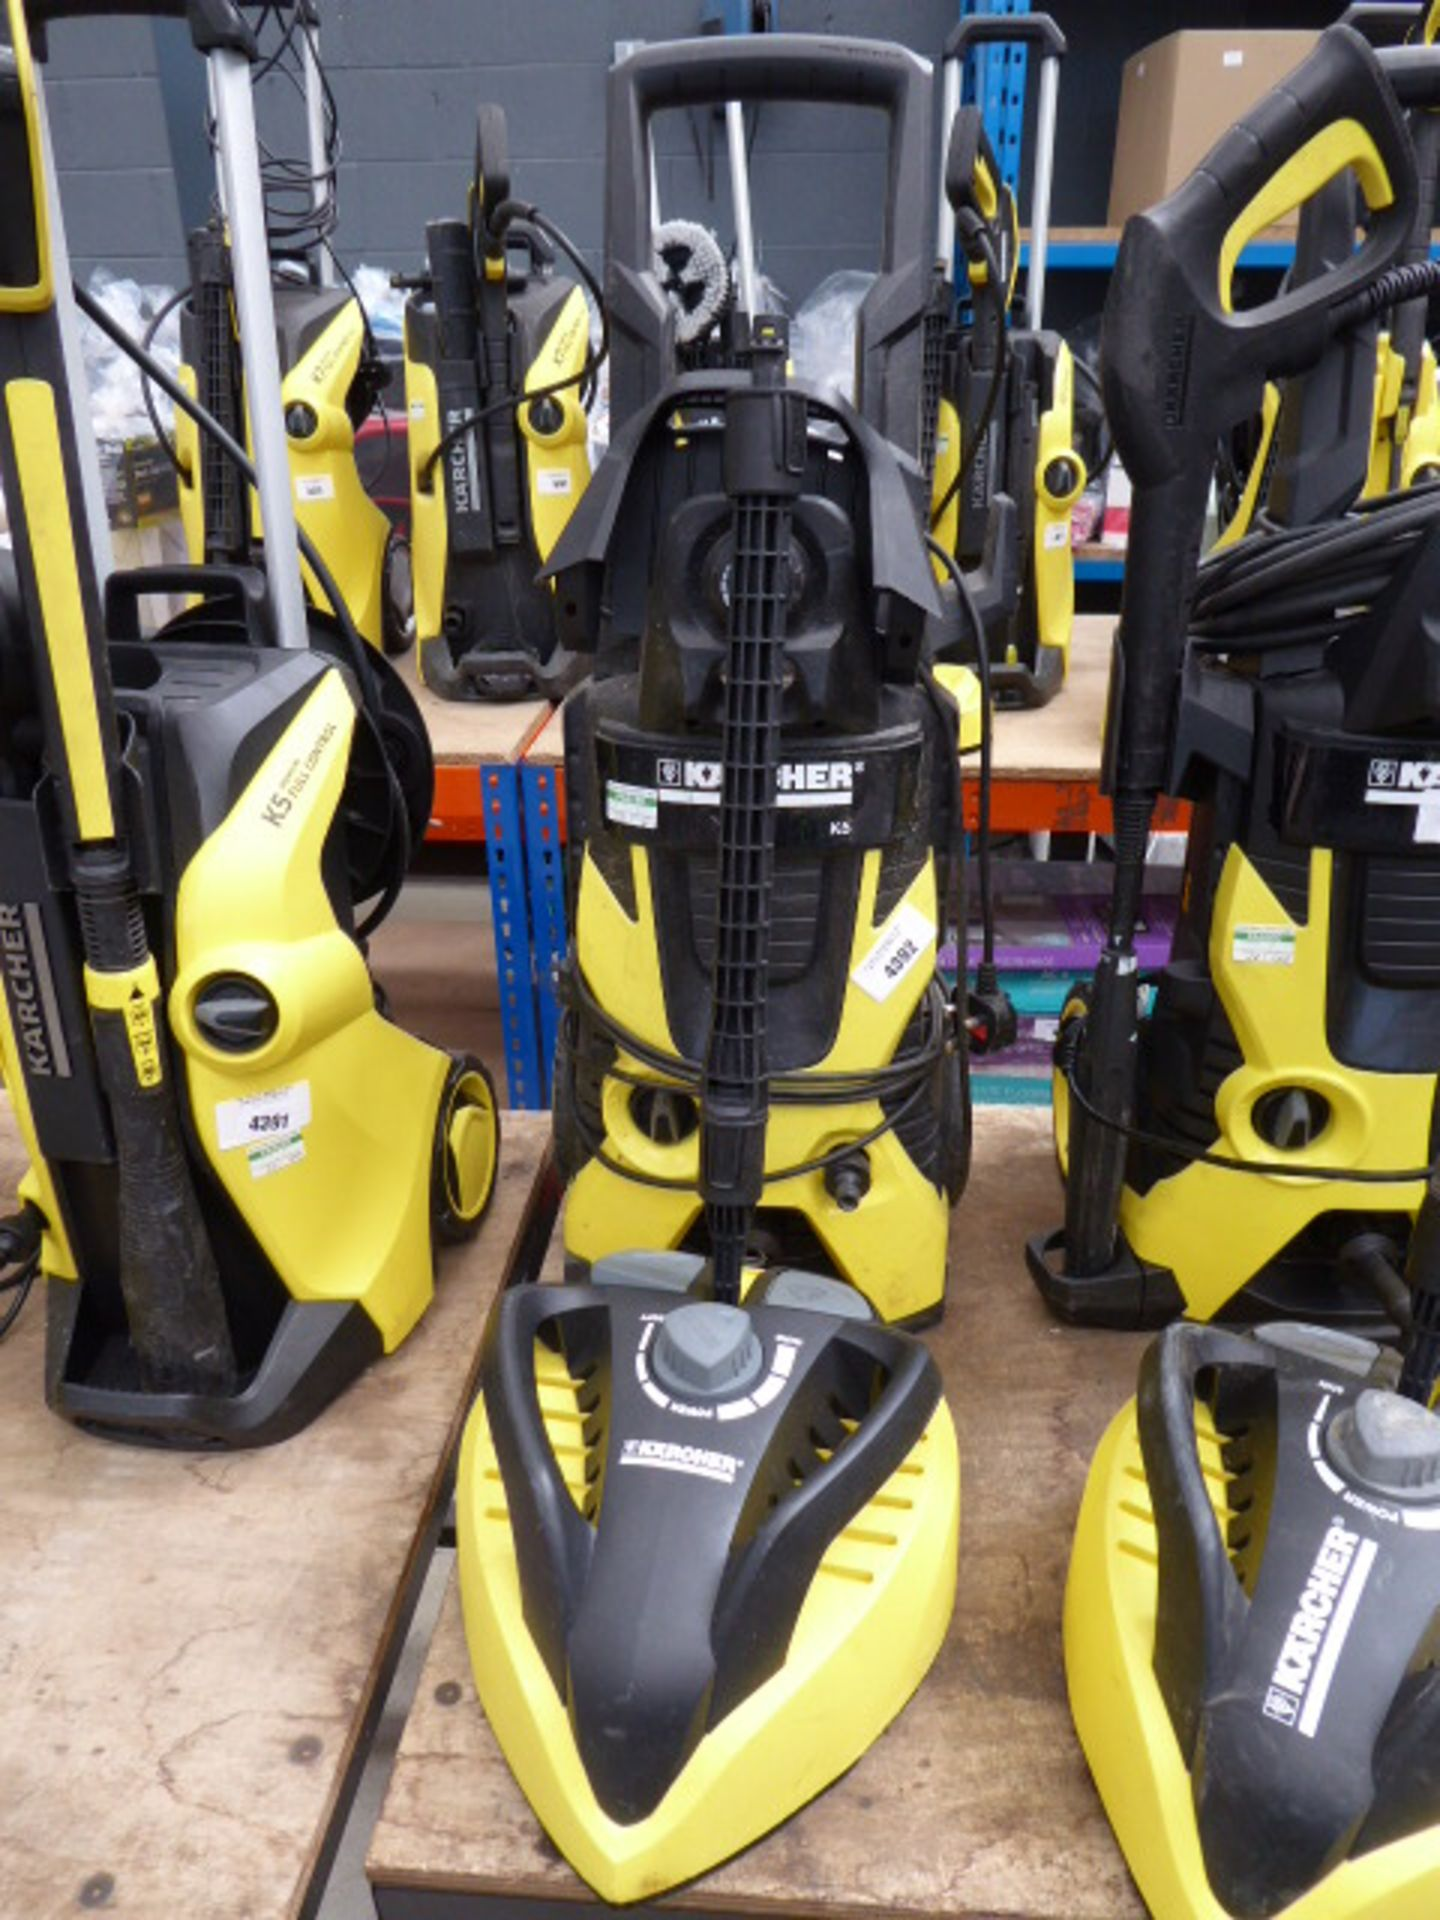 Lot 4392 - Karcher K5 electric pressure washer with patio cleaning head